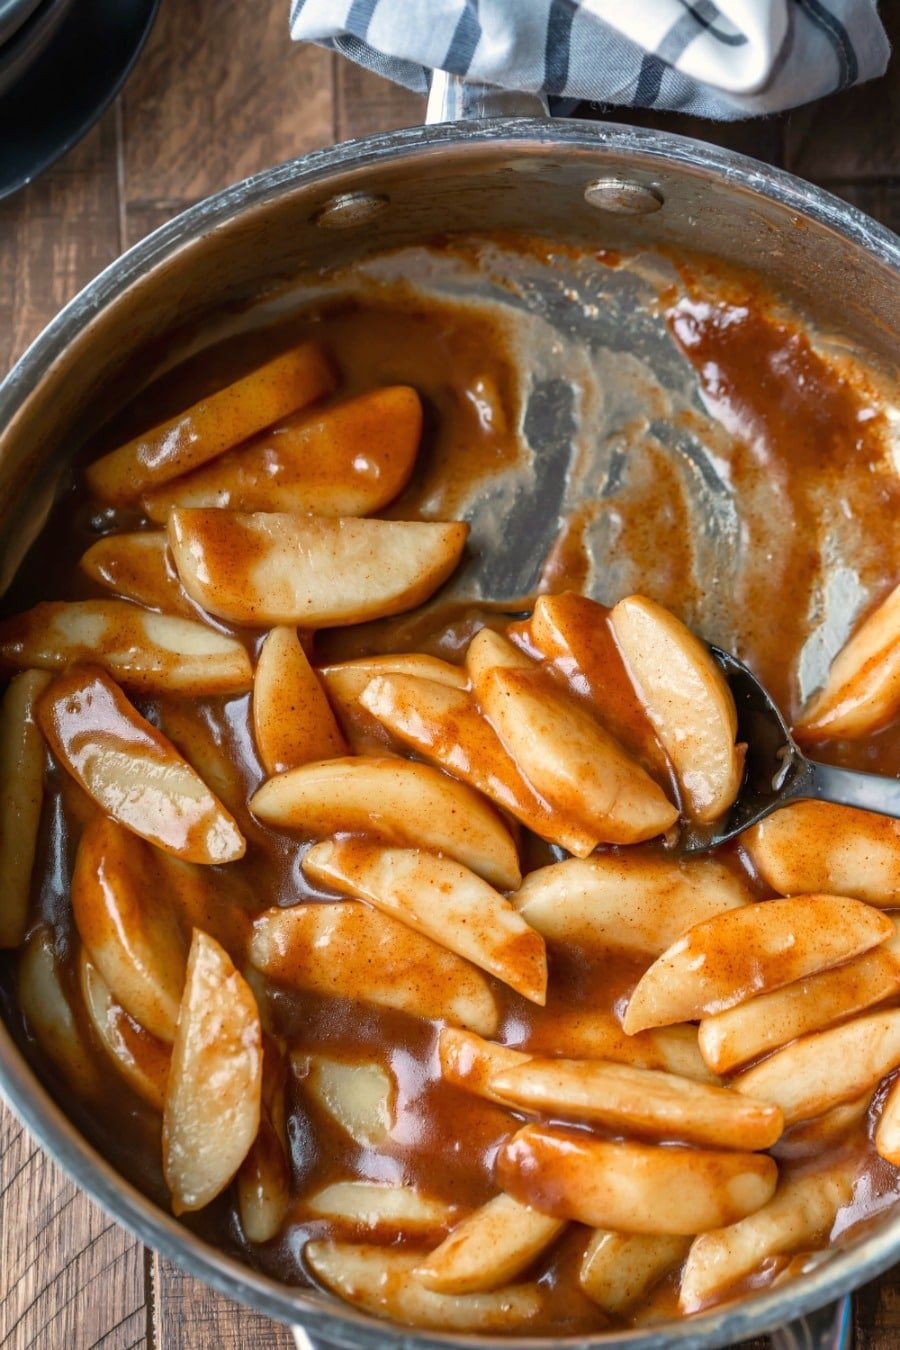 Cinnamon apples in a silver skillet